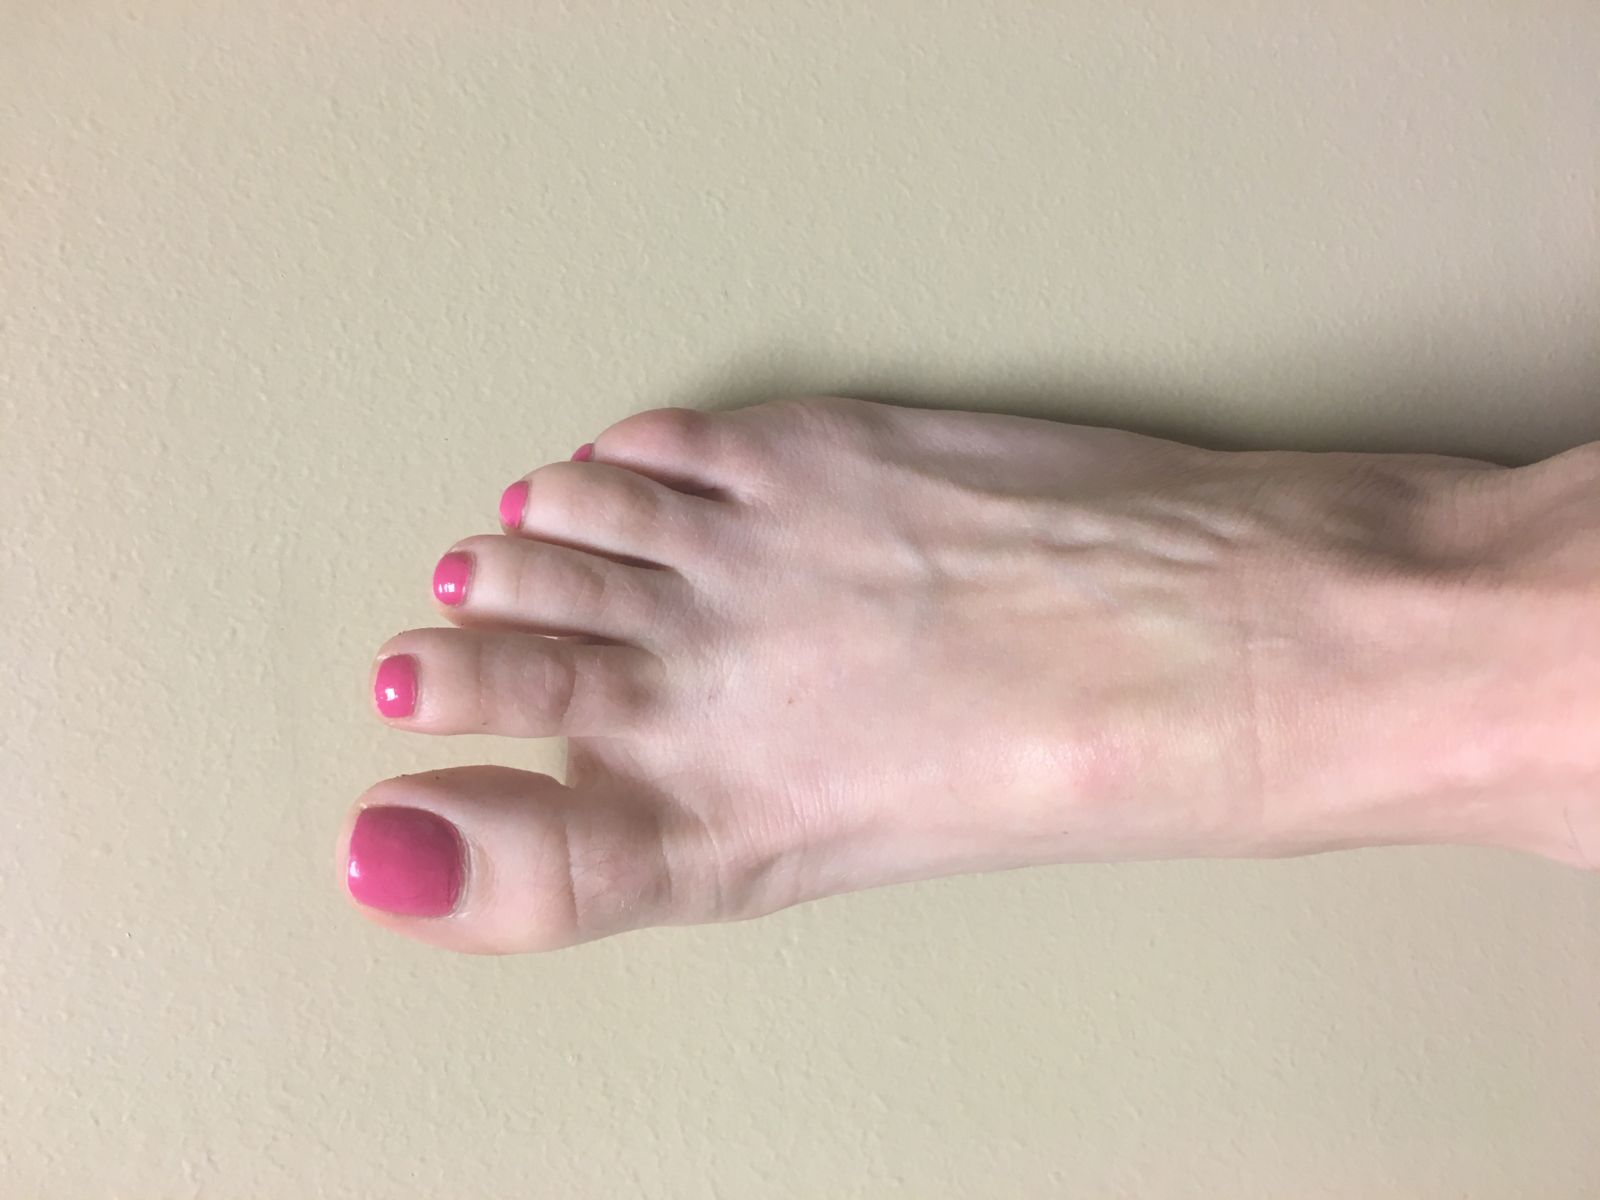 Even a small red mark in the middle of your foot is cause for concern when you have diabetes!